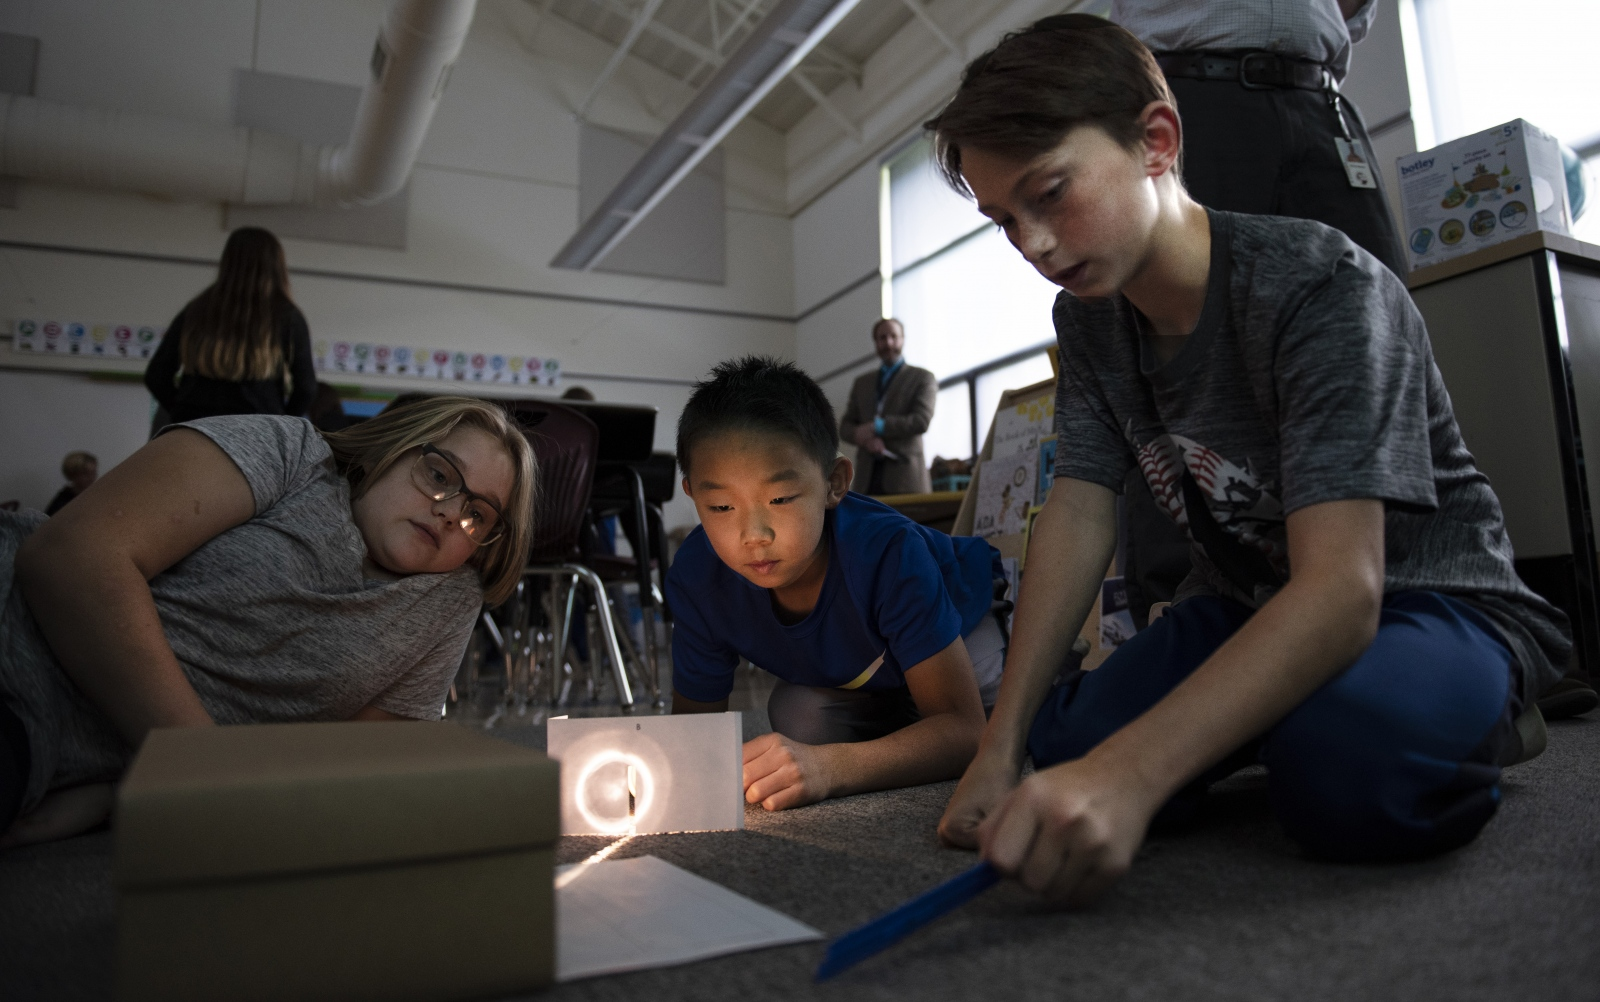 Phoebe Jensen, left, William Liu, middle, and Tiaden Markle, look at the light of a class experiment in the STEM class on Oct. 17, 2018, at Ferguson Township Elementary School in State College, Pa.